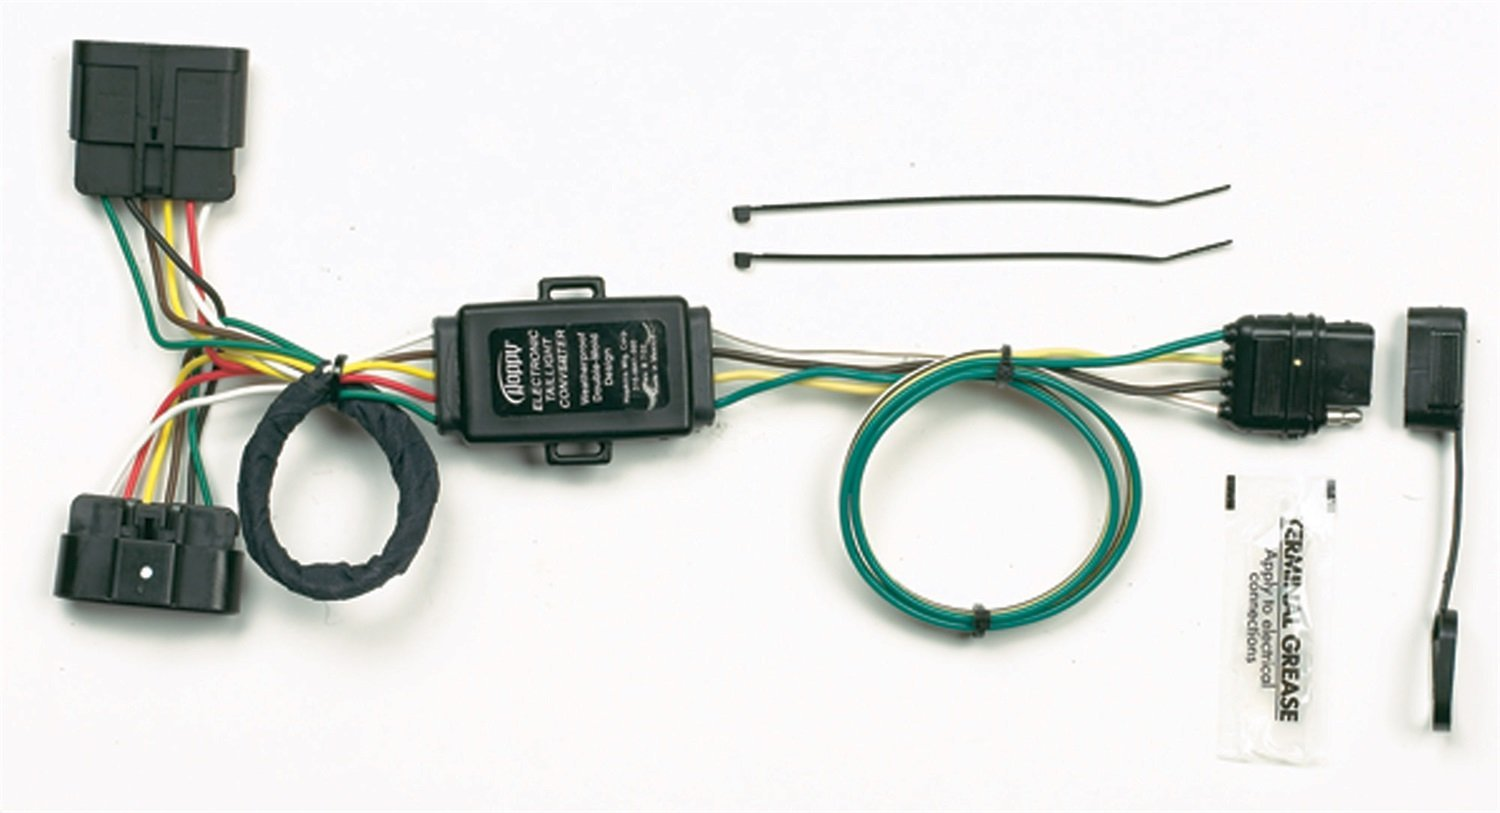 Hoppy Wiring Harness Simple Diagram Trailer Hitch Adapter Hopkins 41165 Plug In Vehicle Kit Connector Chevrolet Caterpillar